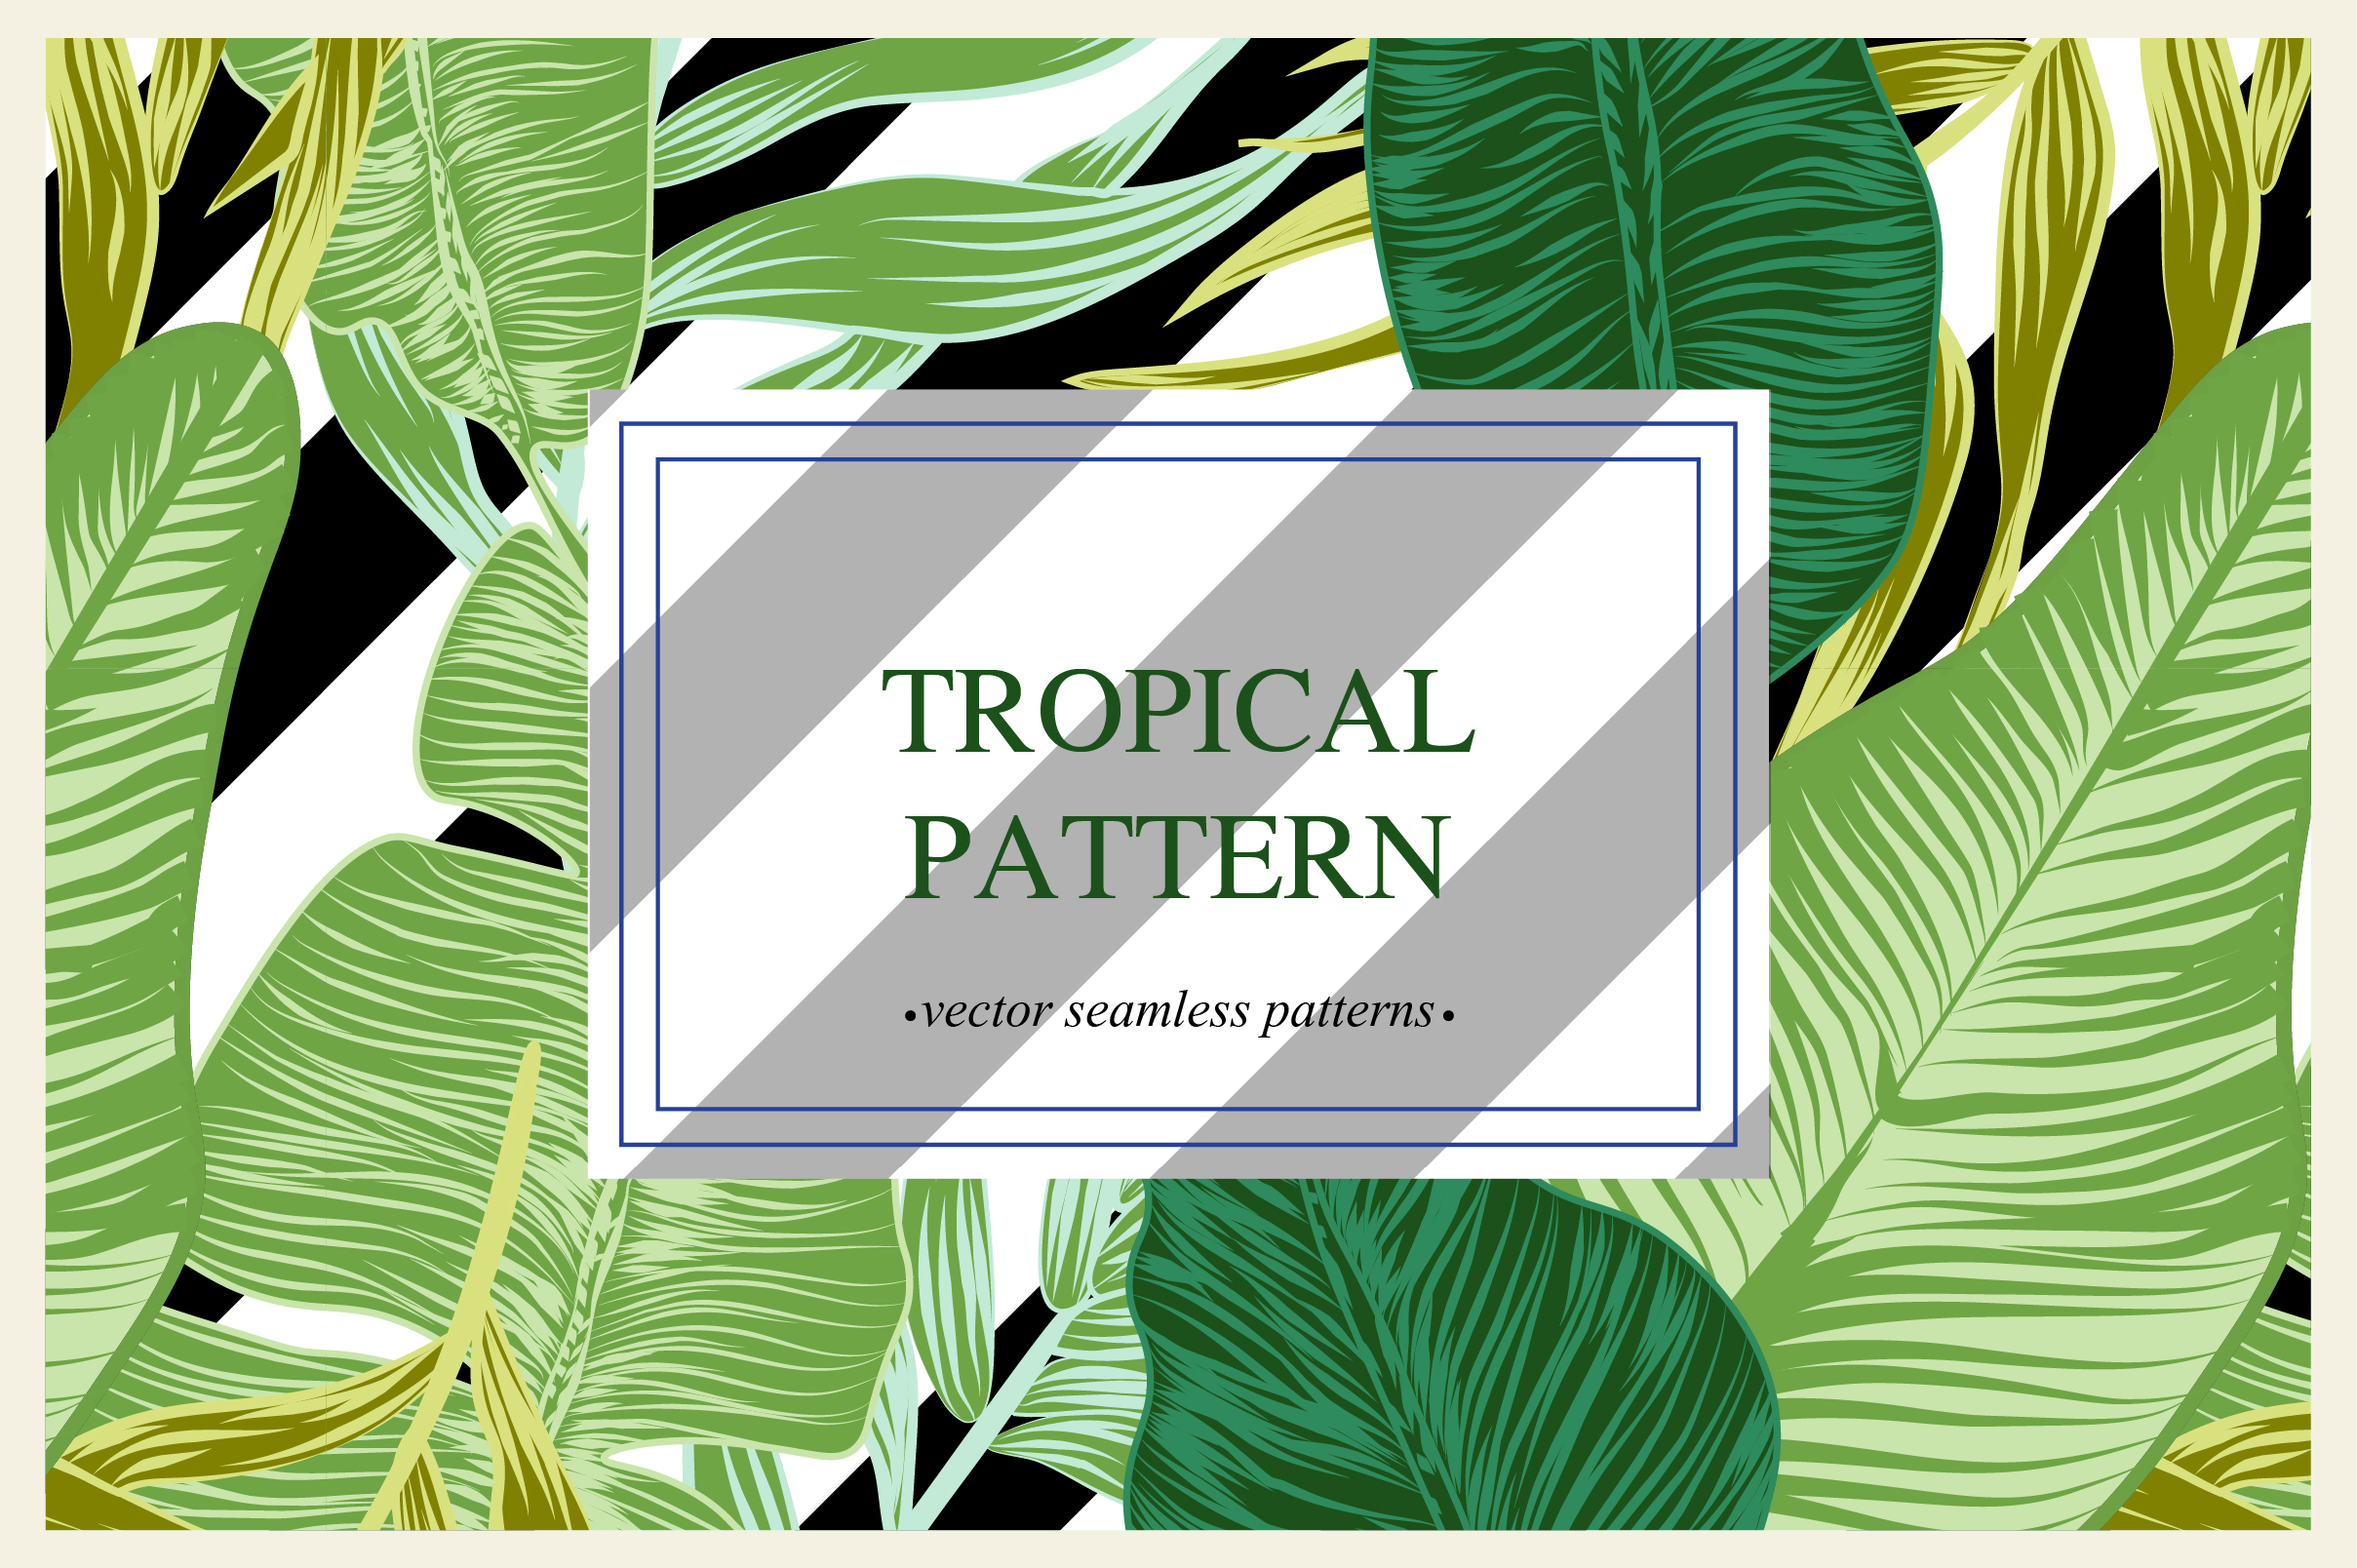 Tropical pattern example image 10